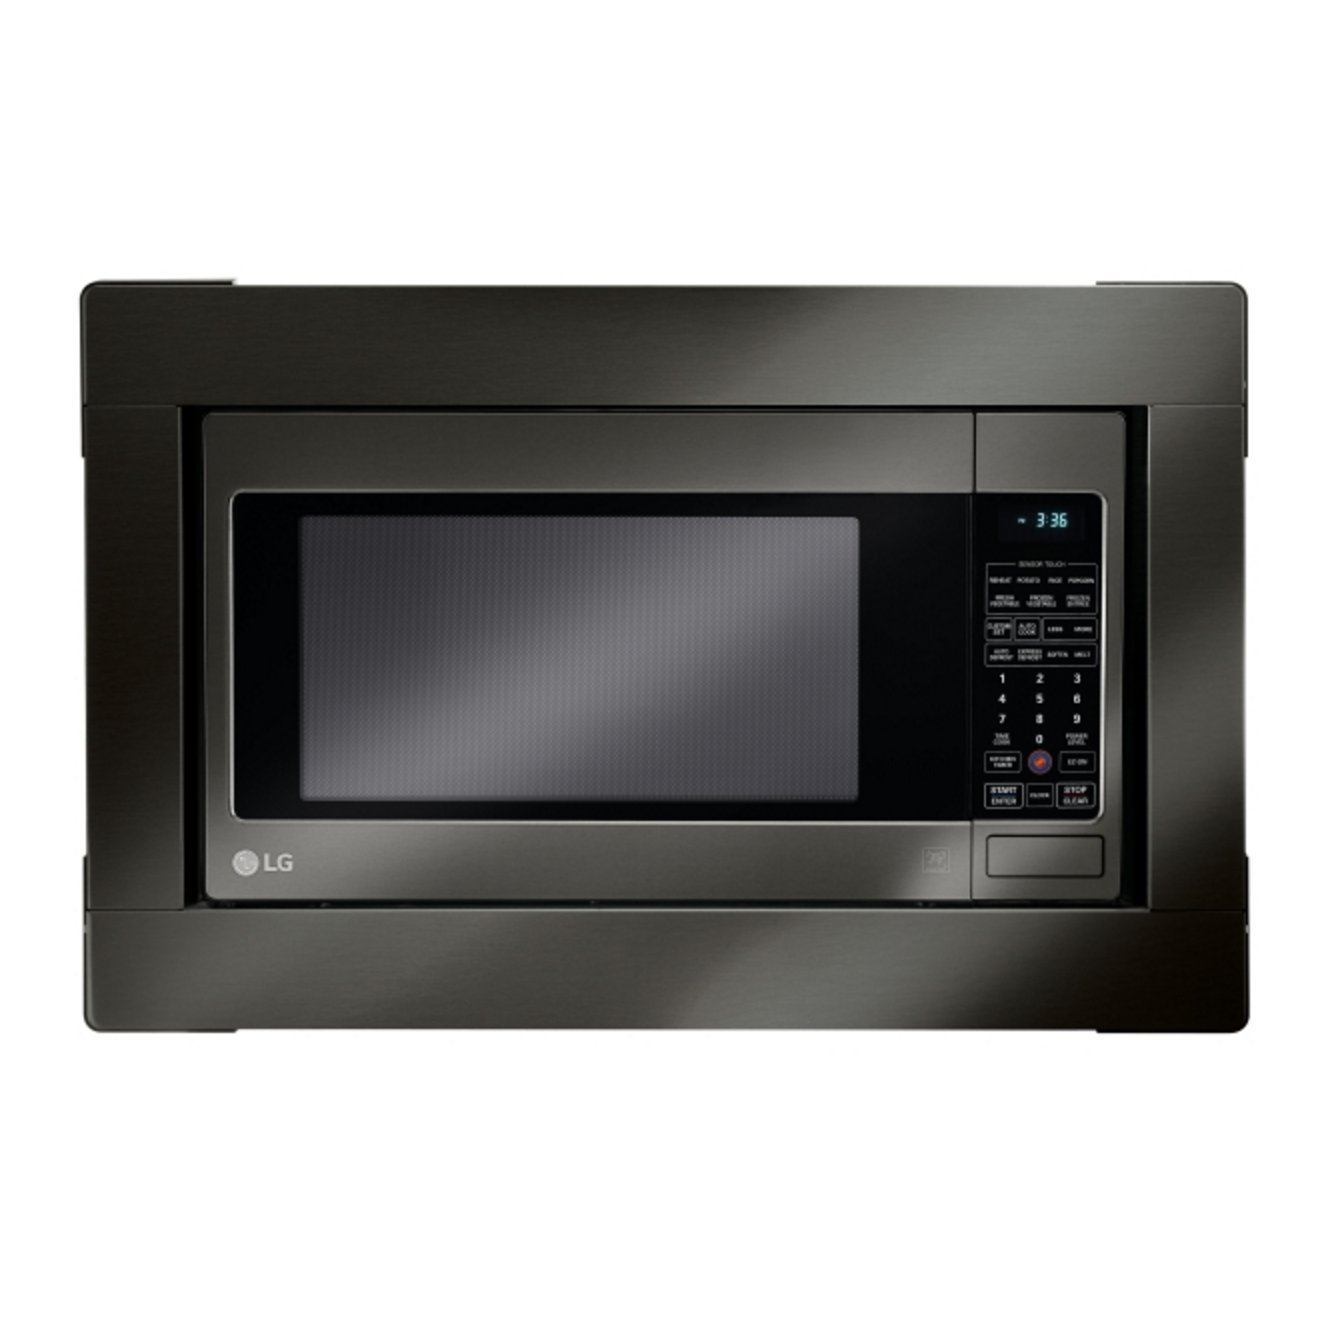 LG 30 Inch Black Stainless Steel Microwave Trim Kit | RC Willey Furniture  Store